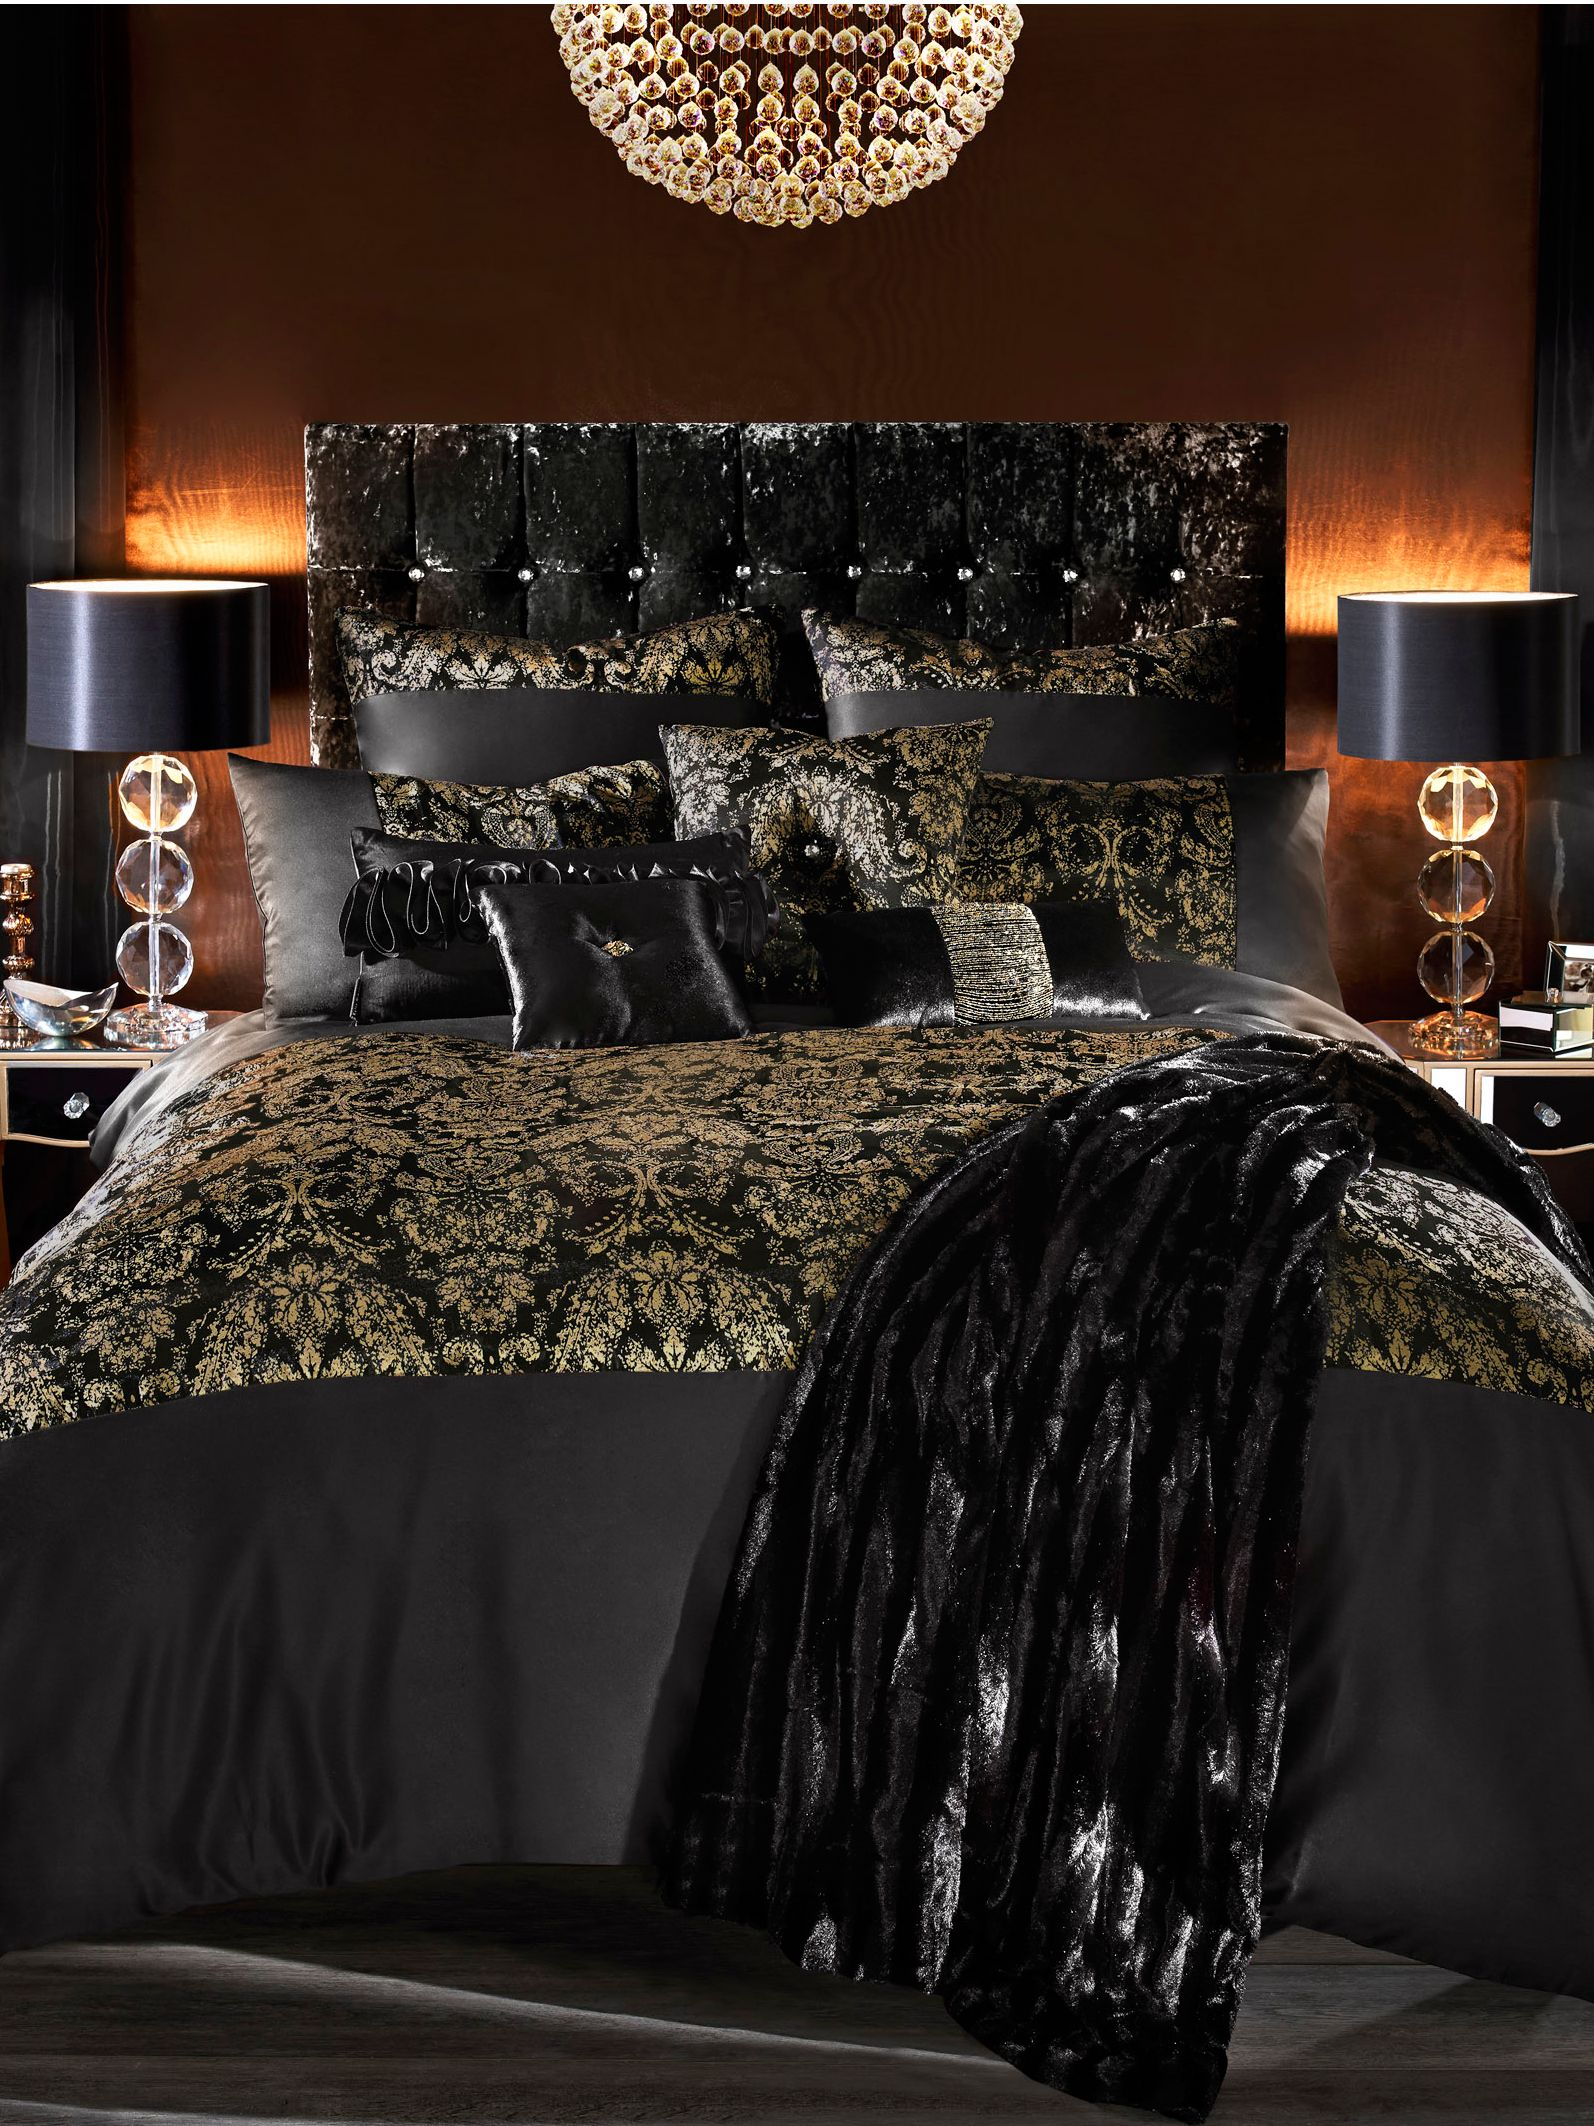 Alondra bed linen in black and